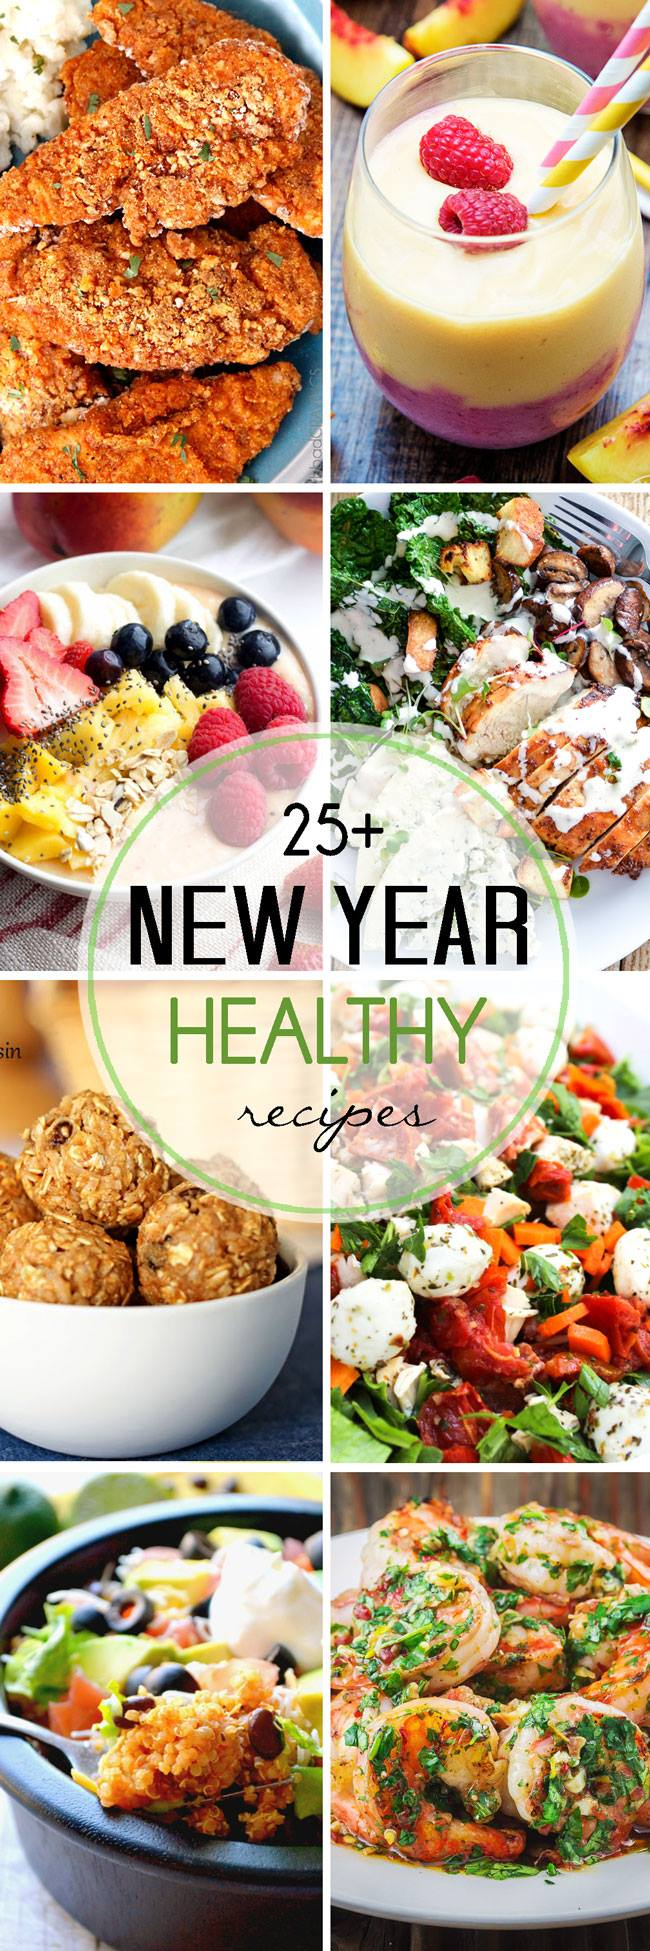 New Year Healthy recipes that will feed your health and taste buds!